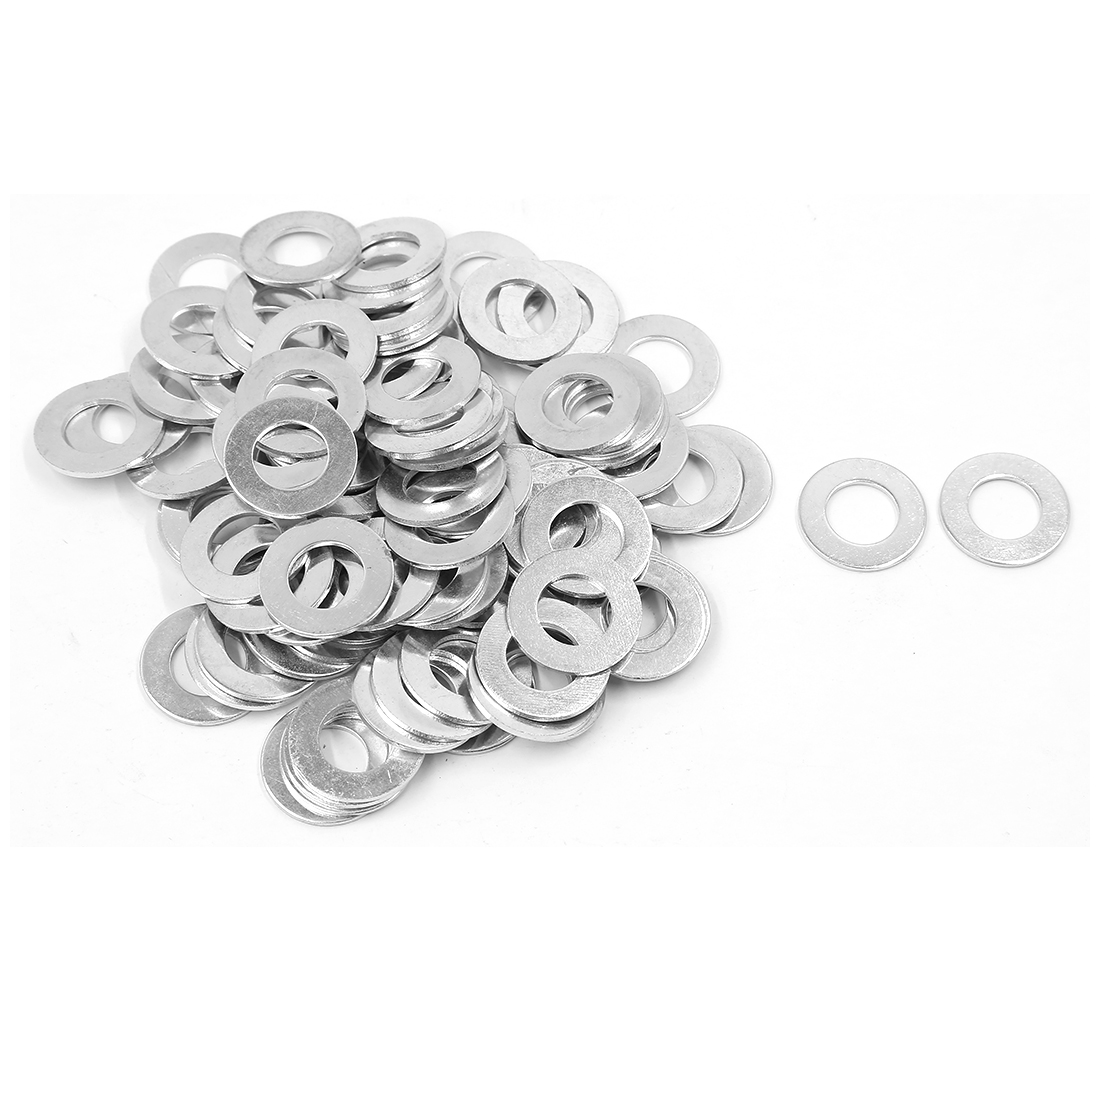 100Pcs M14x28mmx1.6mm Stainless Steel Metric Round Flat Washer for Bolt Screw